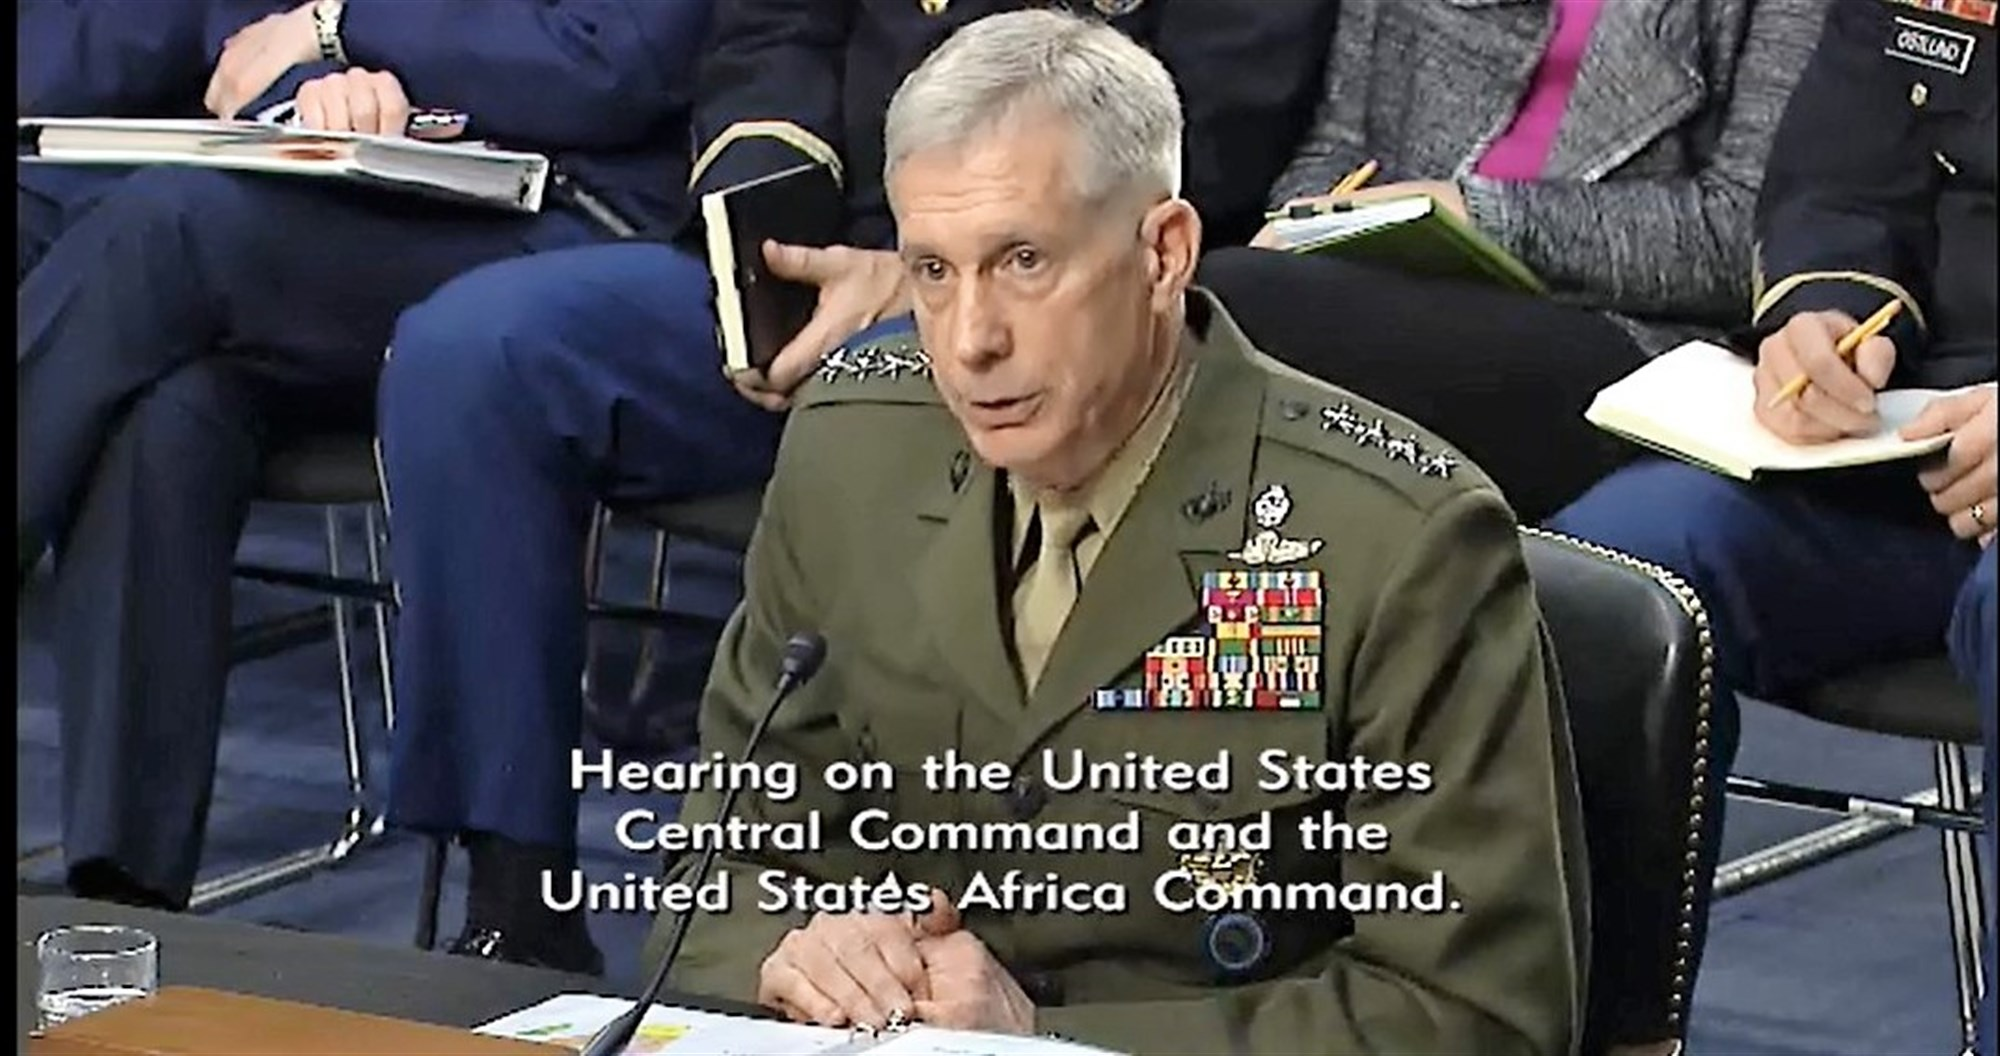 Commander U.S. Africa Command General Thomas Waldhauser provides information to members of the U.S. Senate Committee on Armed Services (SASC) during a hearing held on March 9, 2017 in Washington, DC.  Waldhauser appeared before the committee for an annual session that allows members the opportunity receive updates from commanders and ask questions that inform decisions. During the hearing, Waldhauser submitted U.S. AFRICOM's official annual posture statement and answered questions related to the command's area of responsibility on topics ranging from counter-terrorism initiatives to the influence of other countries upon the African continent. (Courtesy image)